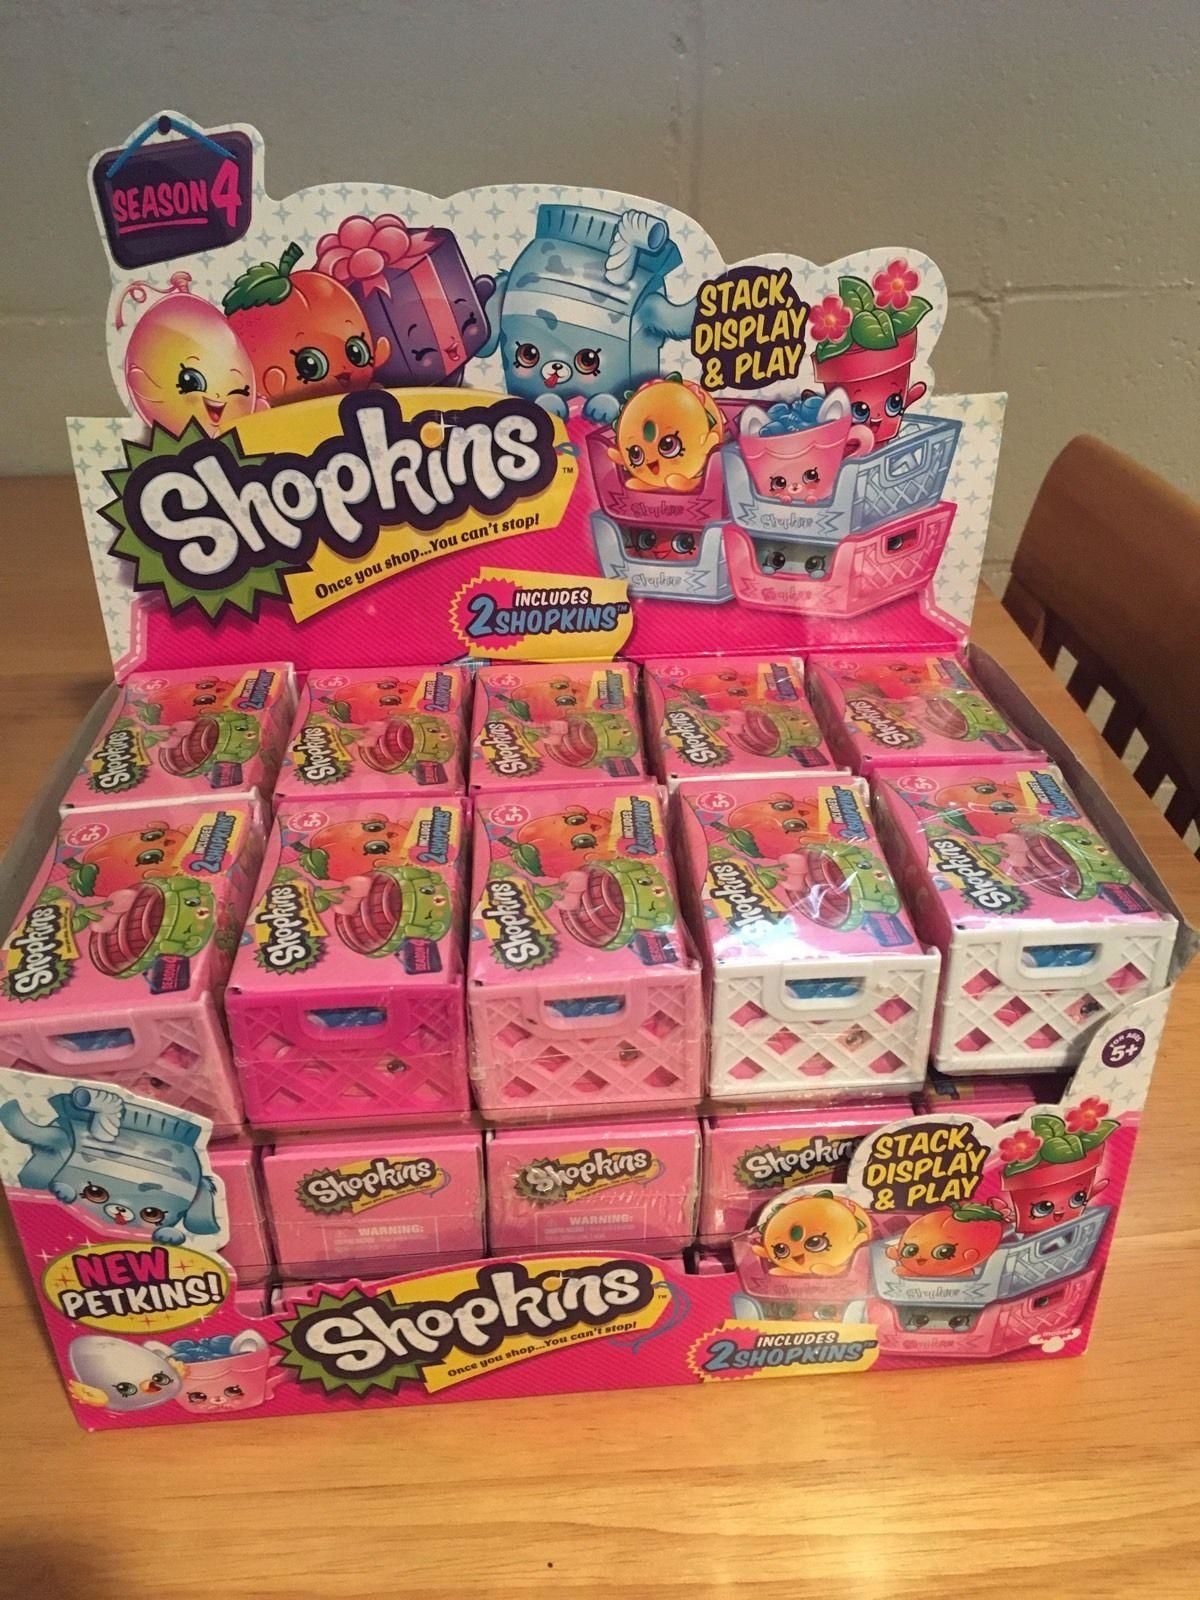 All Season Shopkins Available for sale in wholesale